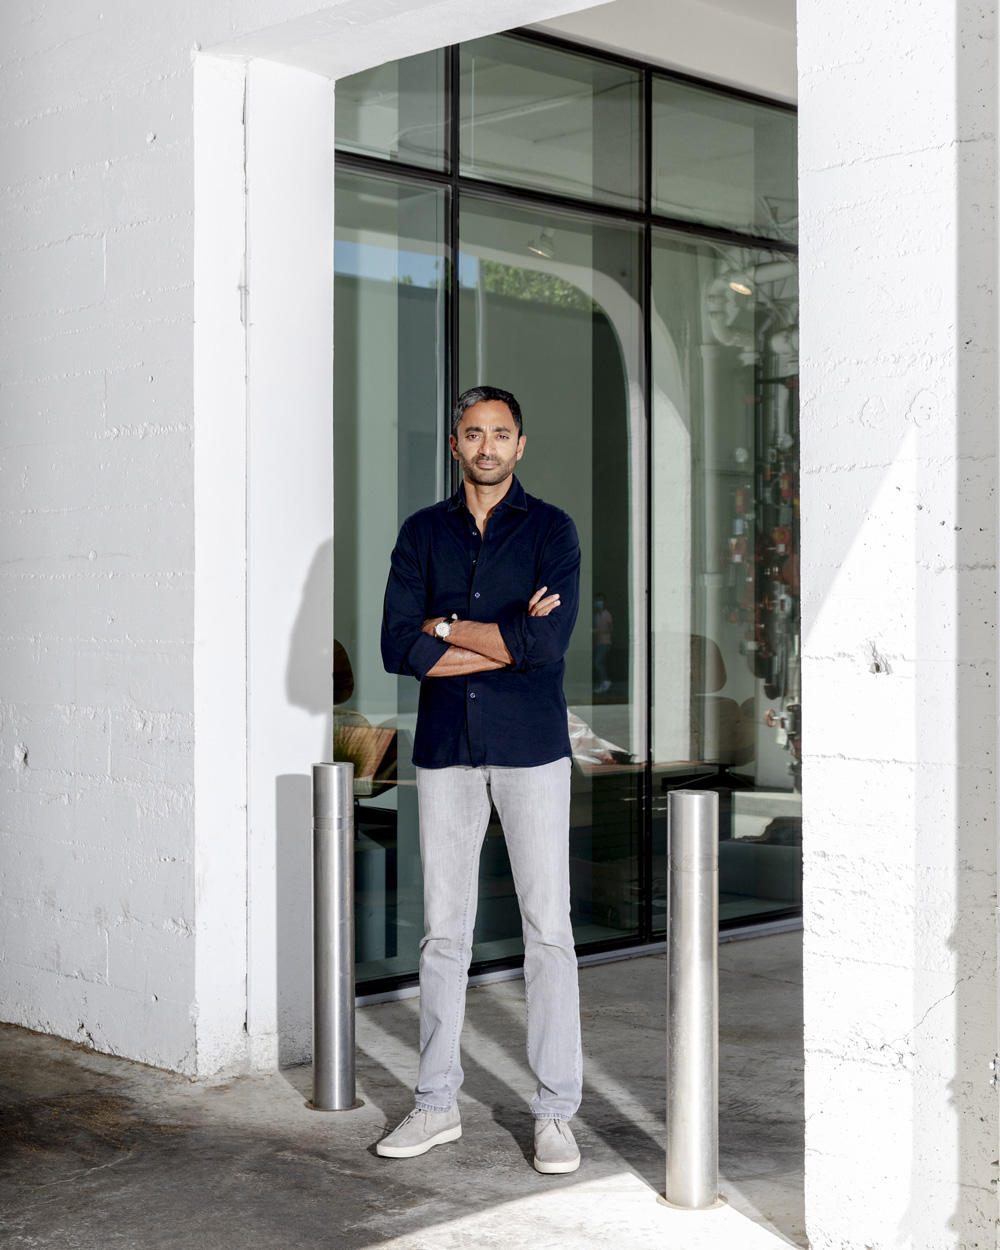 Chamath Palihapitiya (Photographs by Cayce Clifford)